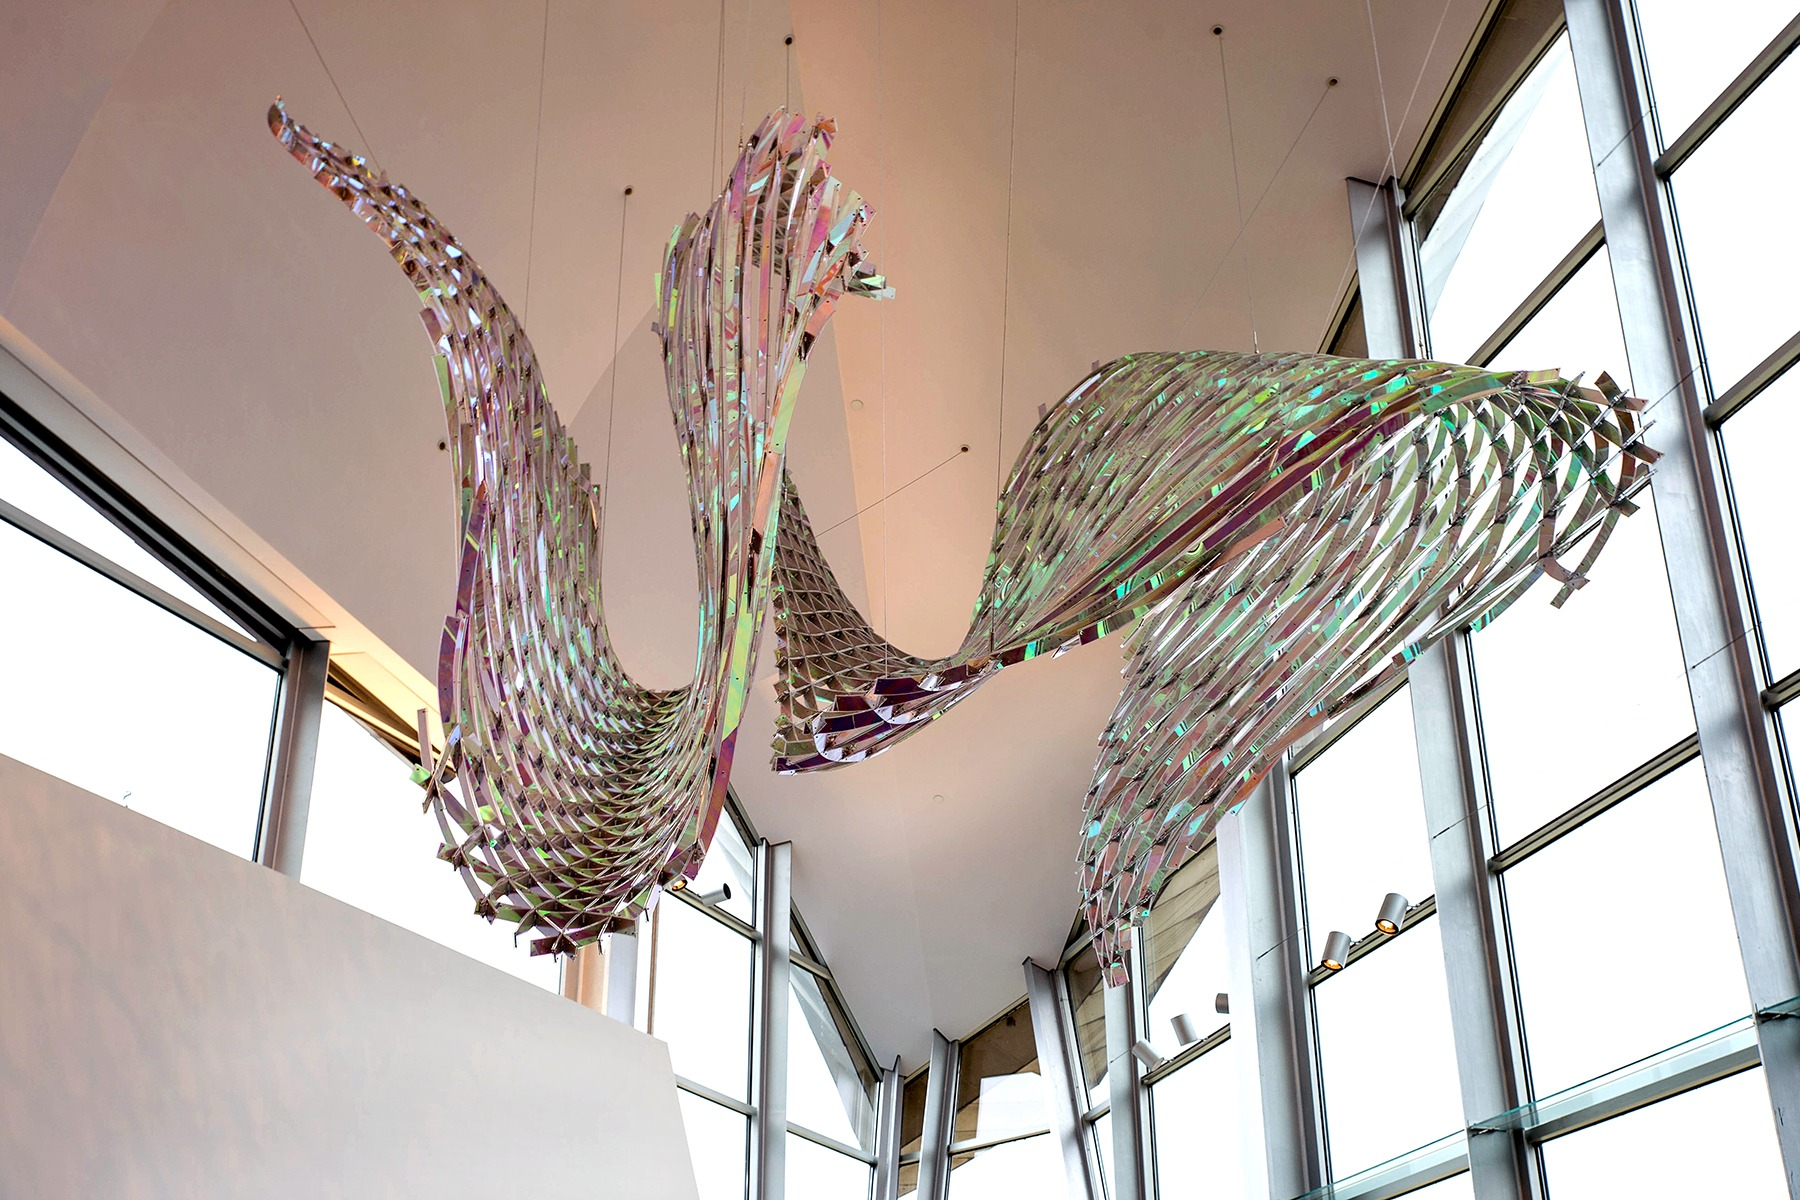 Wavy iridescent sculpture suspended from the ceiling in the lobby of the Hunter Museum.